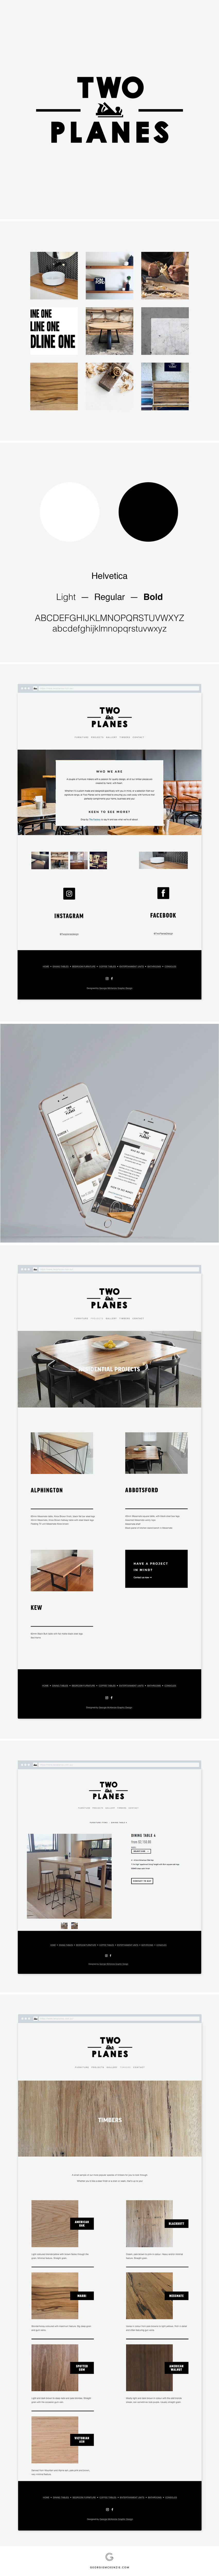 Georgie McKenzie Graphic Design Portfolio — Two Planes.jpg